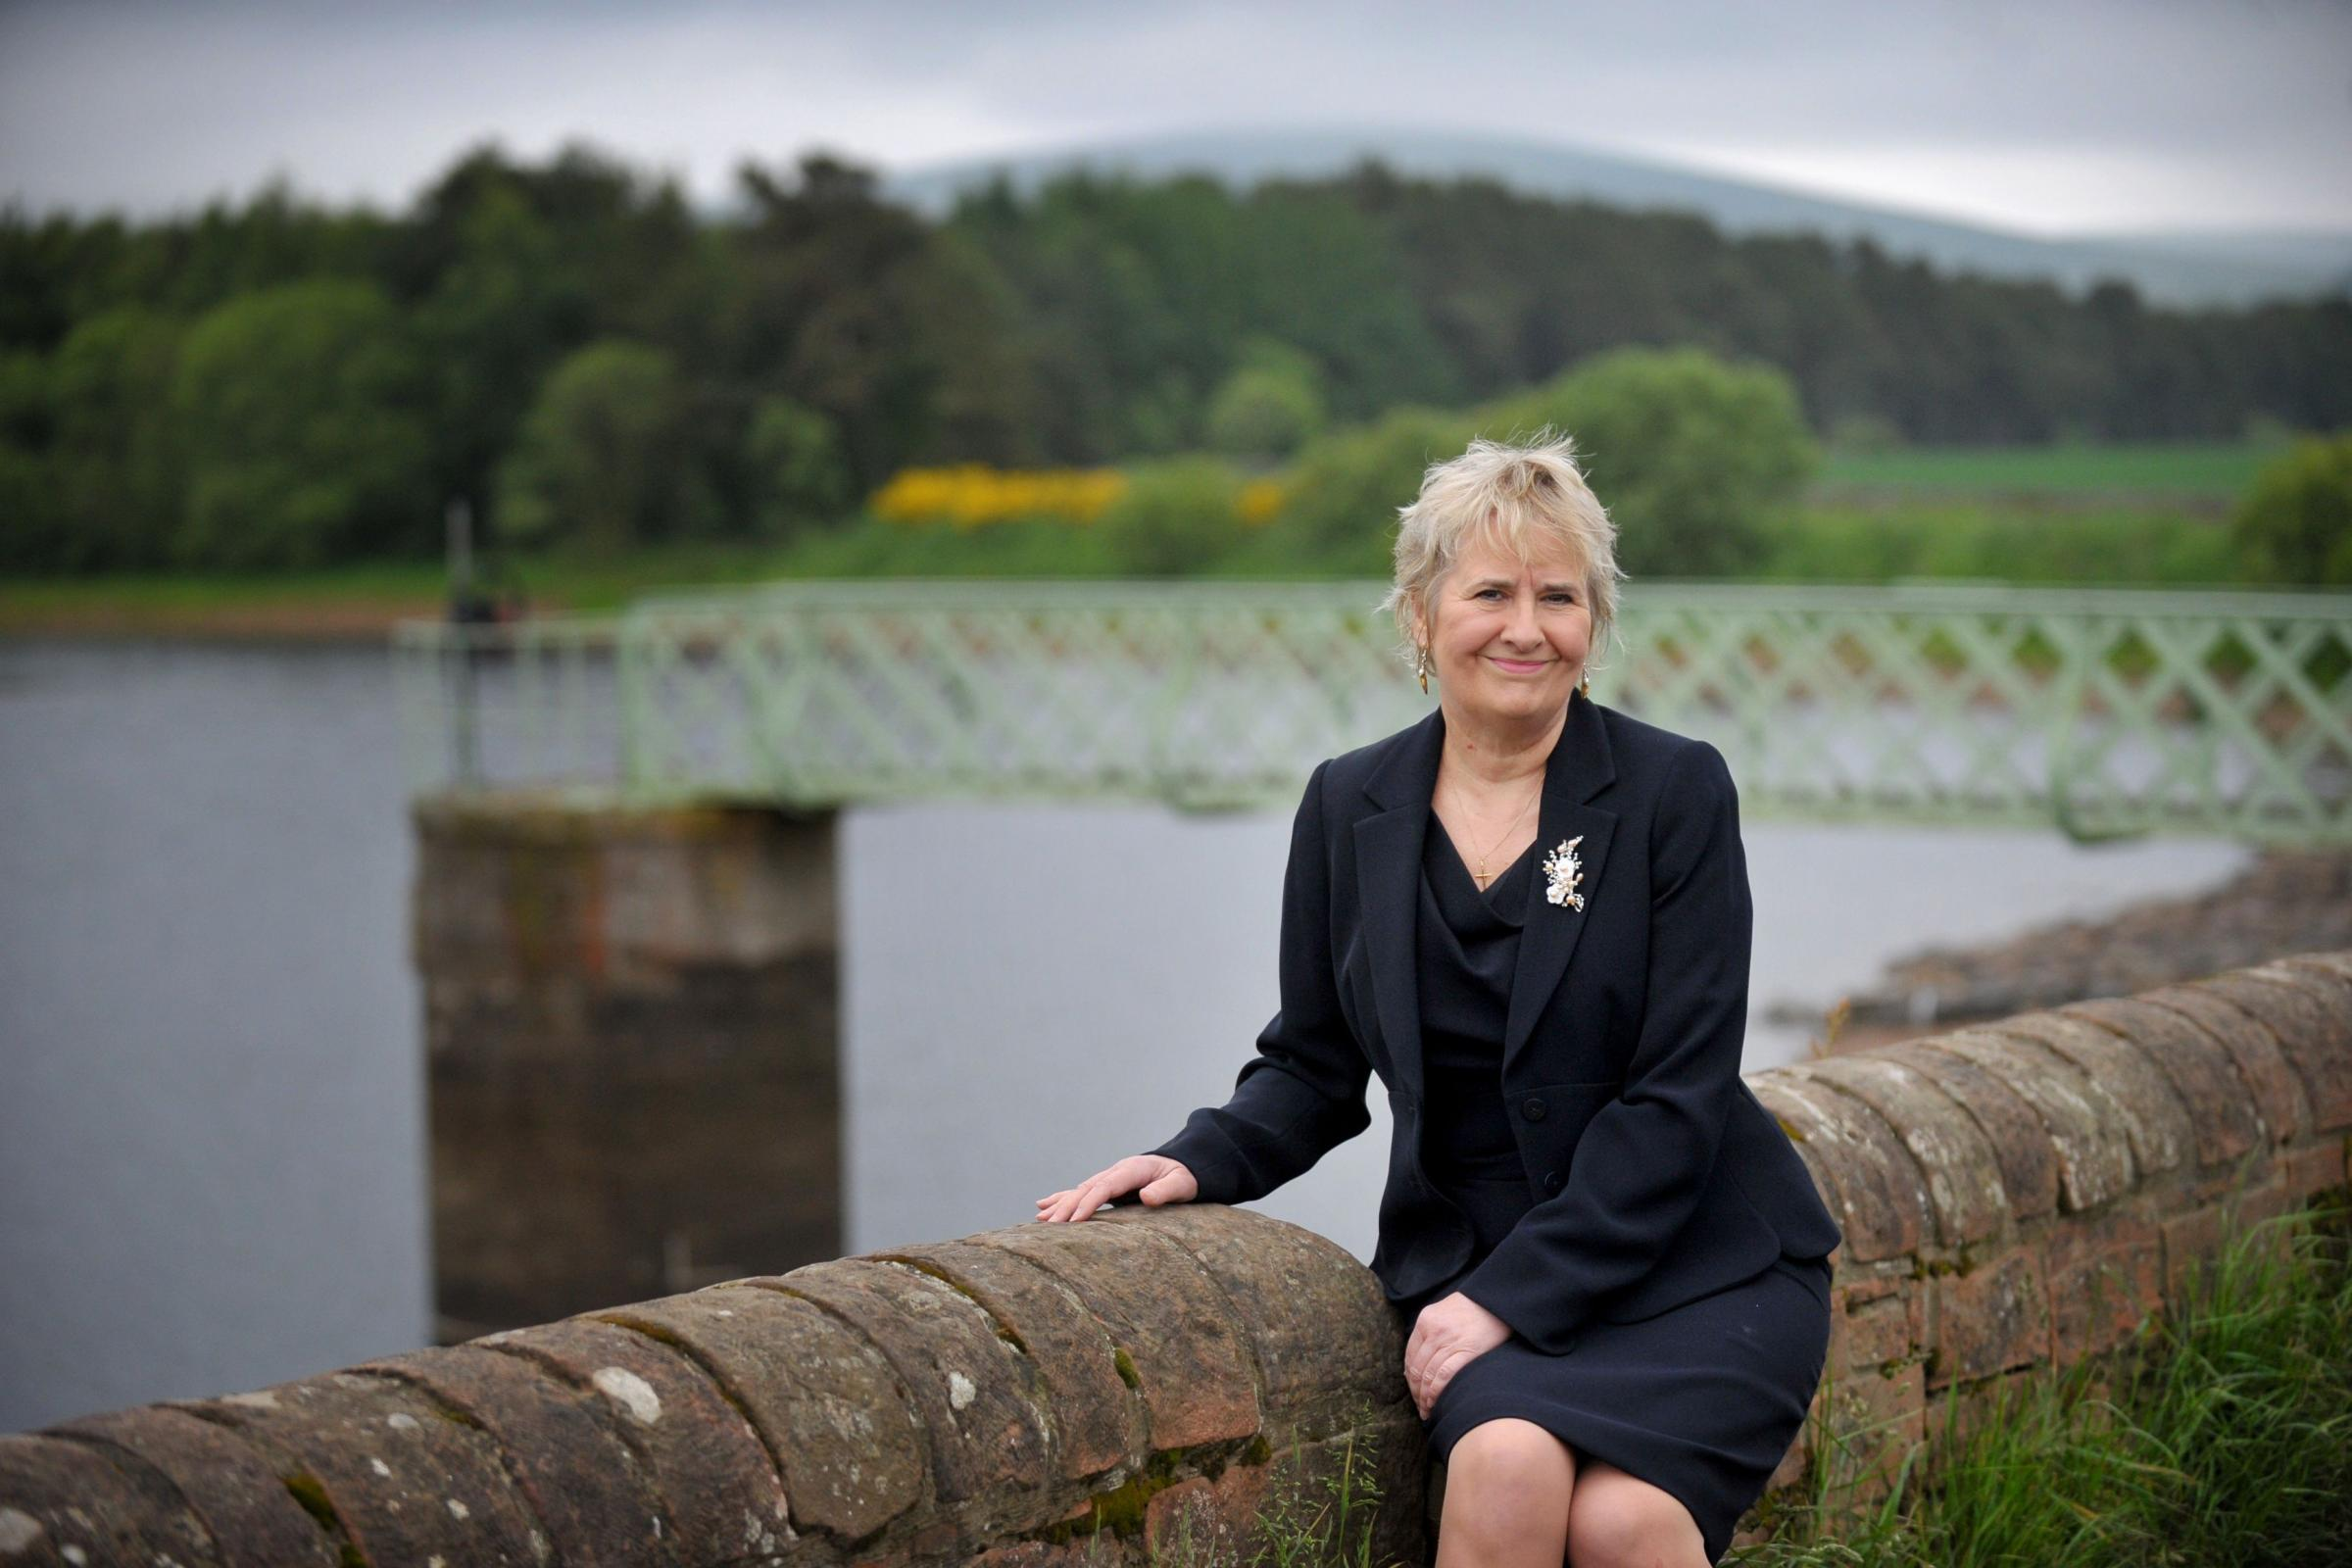 Climate Change Secretary Roseanna Cunningham has announced new proposals